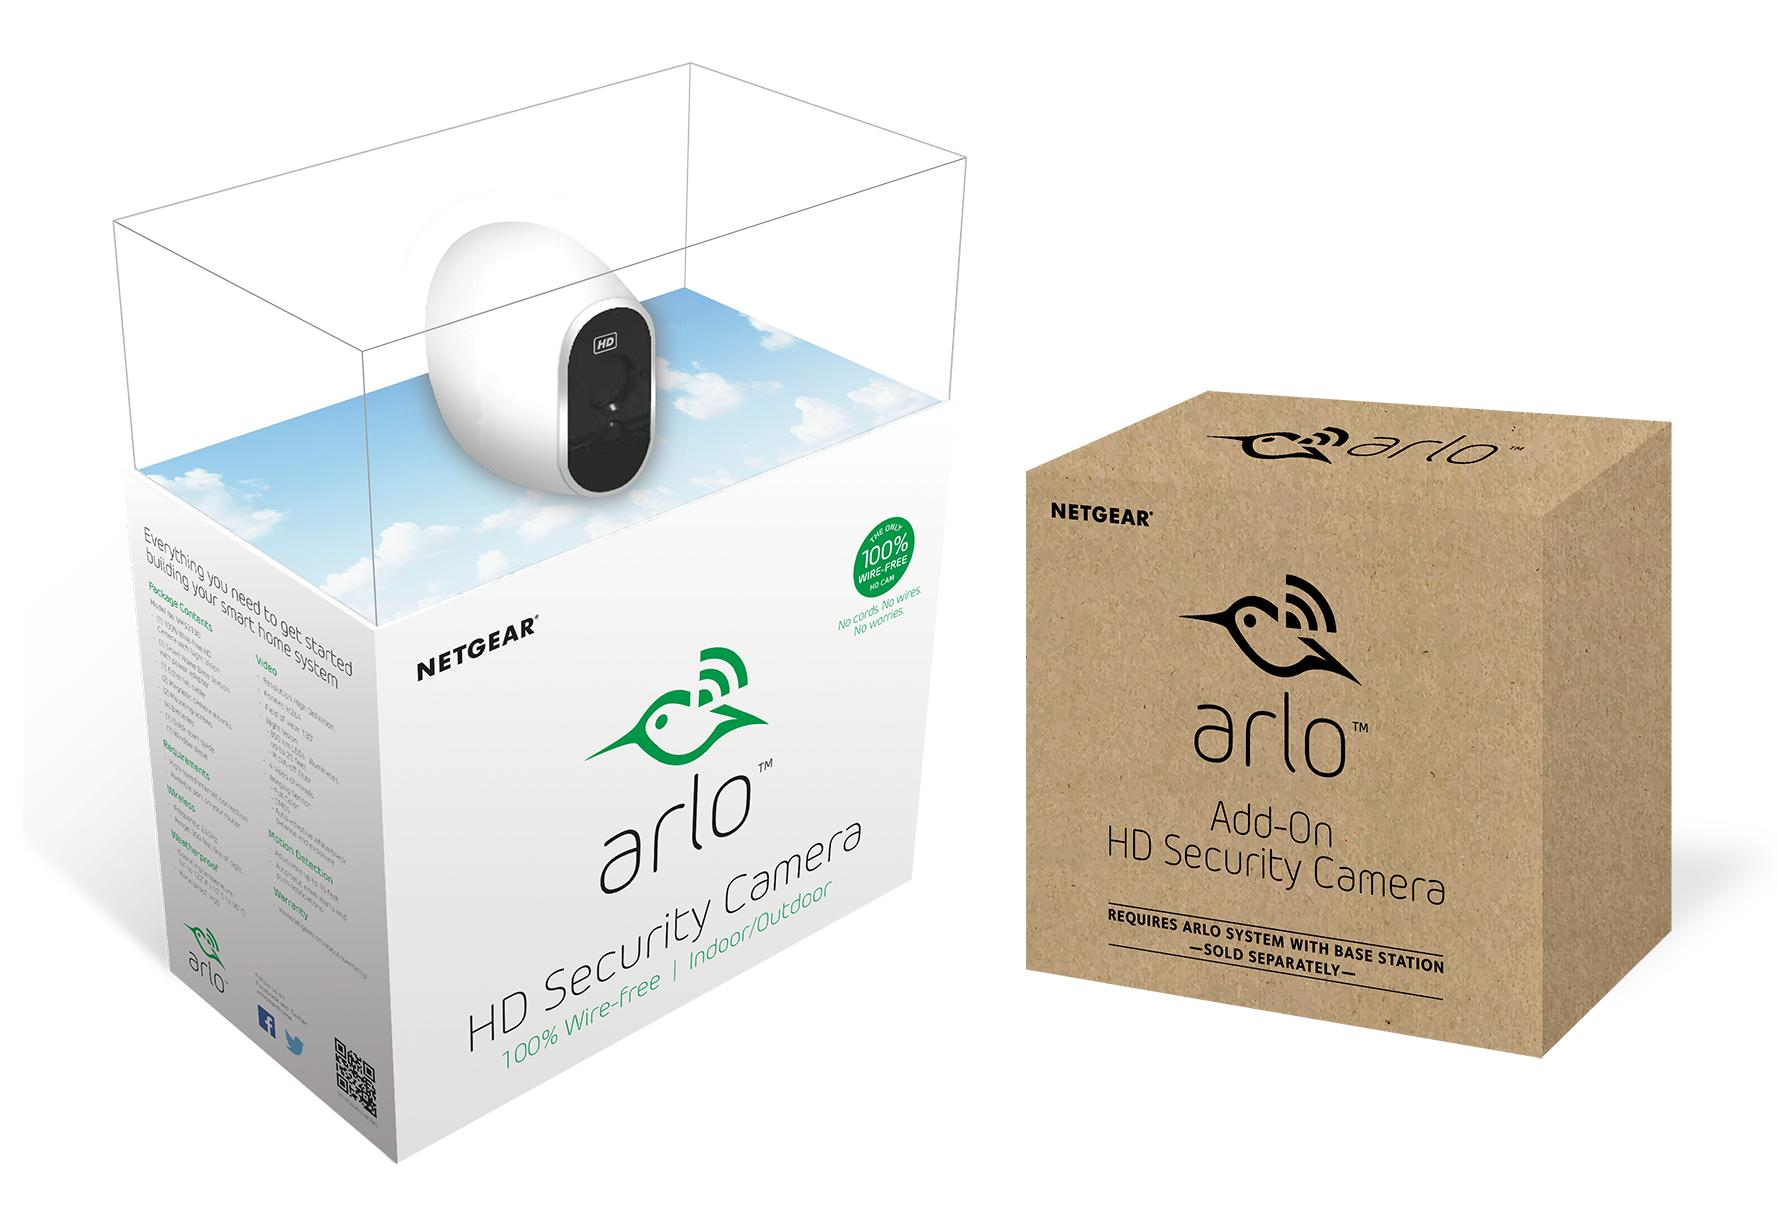 arlo smart home security camera system five camera bundle one camera with base. Black Bedroom Furniture Sets. Home Design Ideas